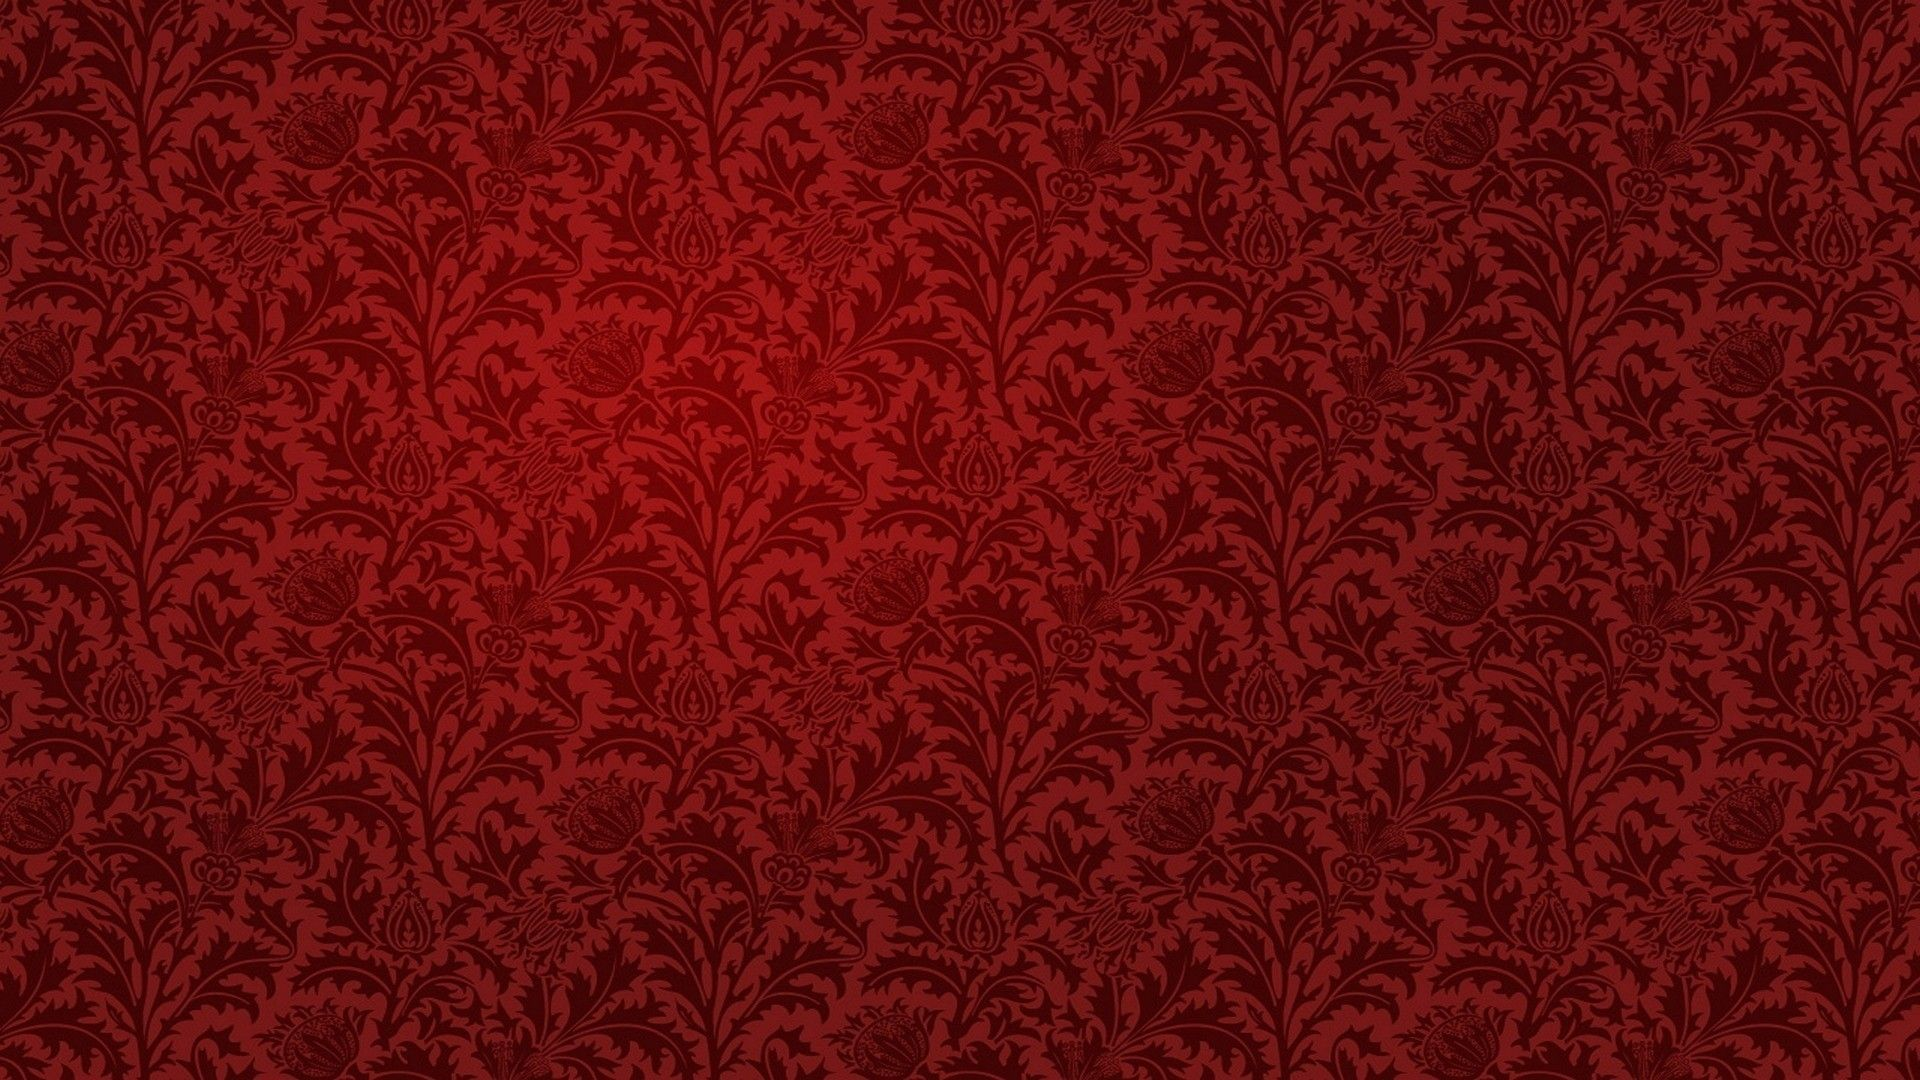 Co Celebrate 150 Years They Have Reprinted Many Of William Morris Wallpaper For Walls Life Hope Description From Pocketsymphony